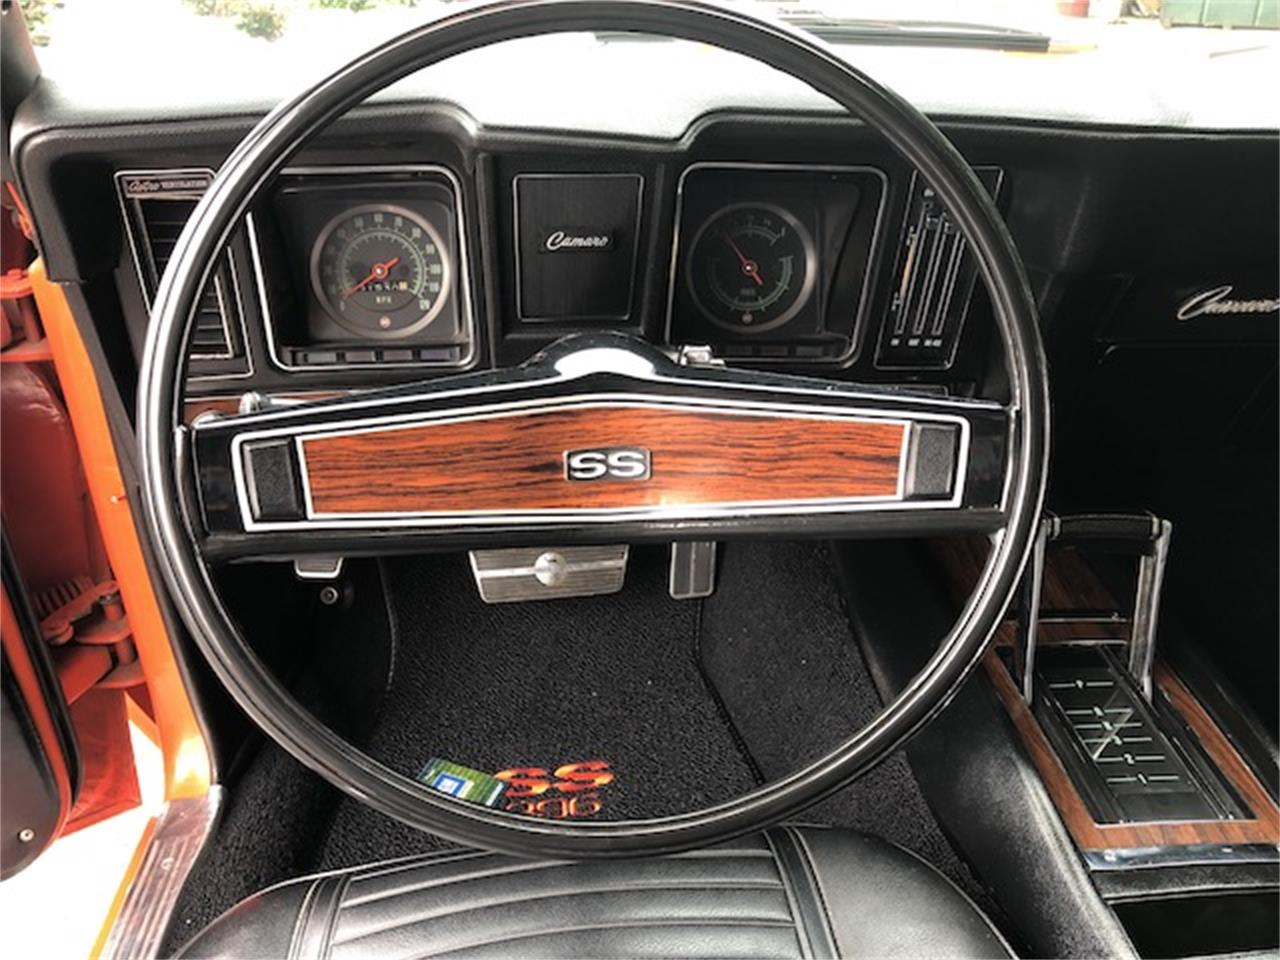 1969 Chevrolet Camaro SS for sale in York, PA – photo 26